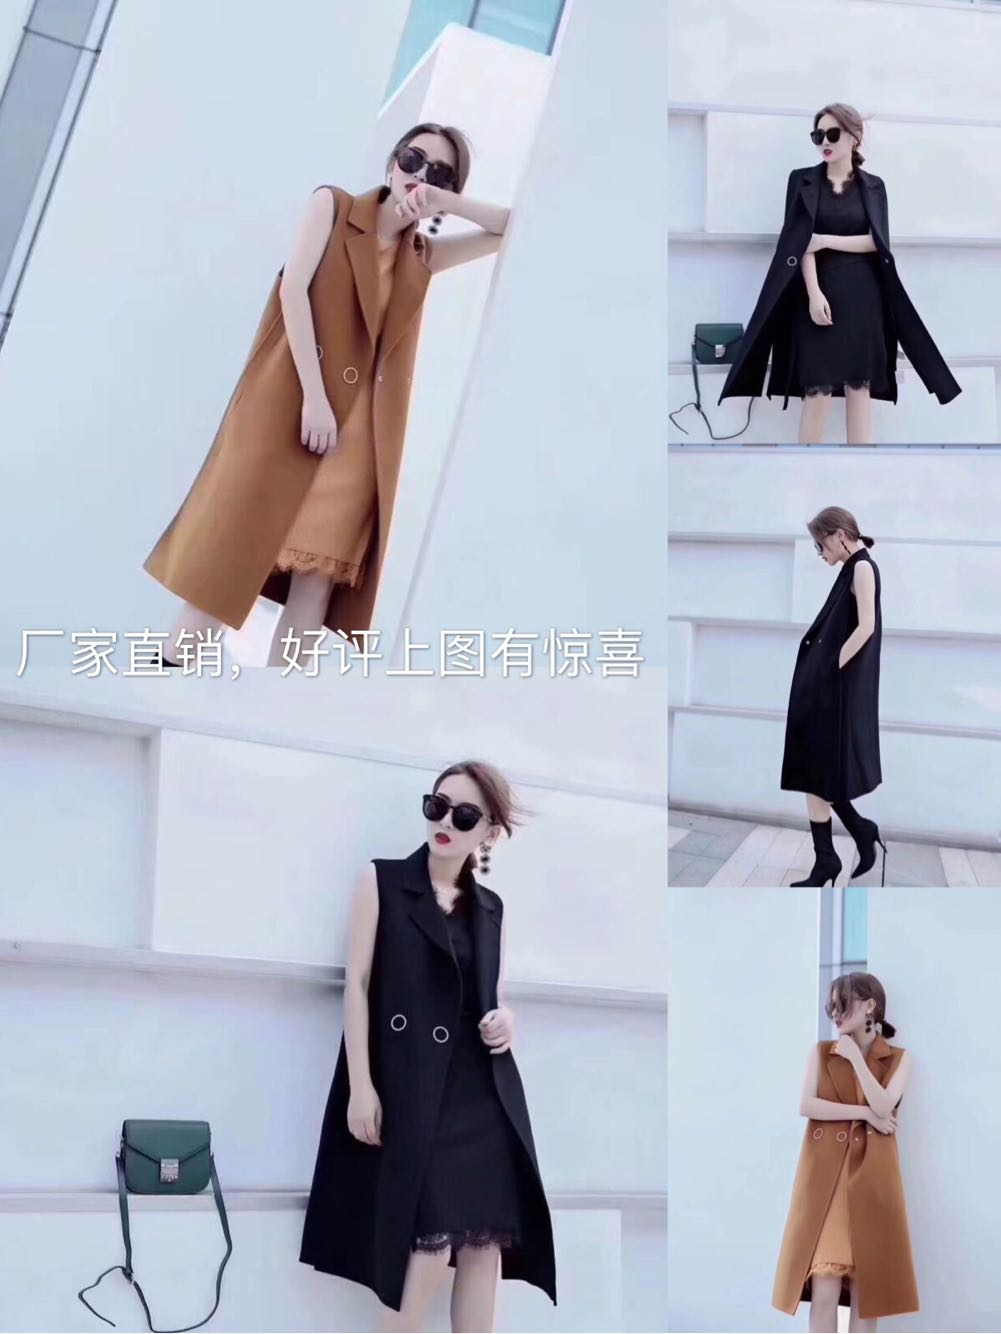 Han ins 2019 new autumn / winter double faced wool medium long coat with metal circle button